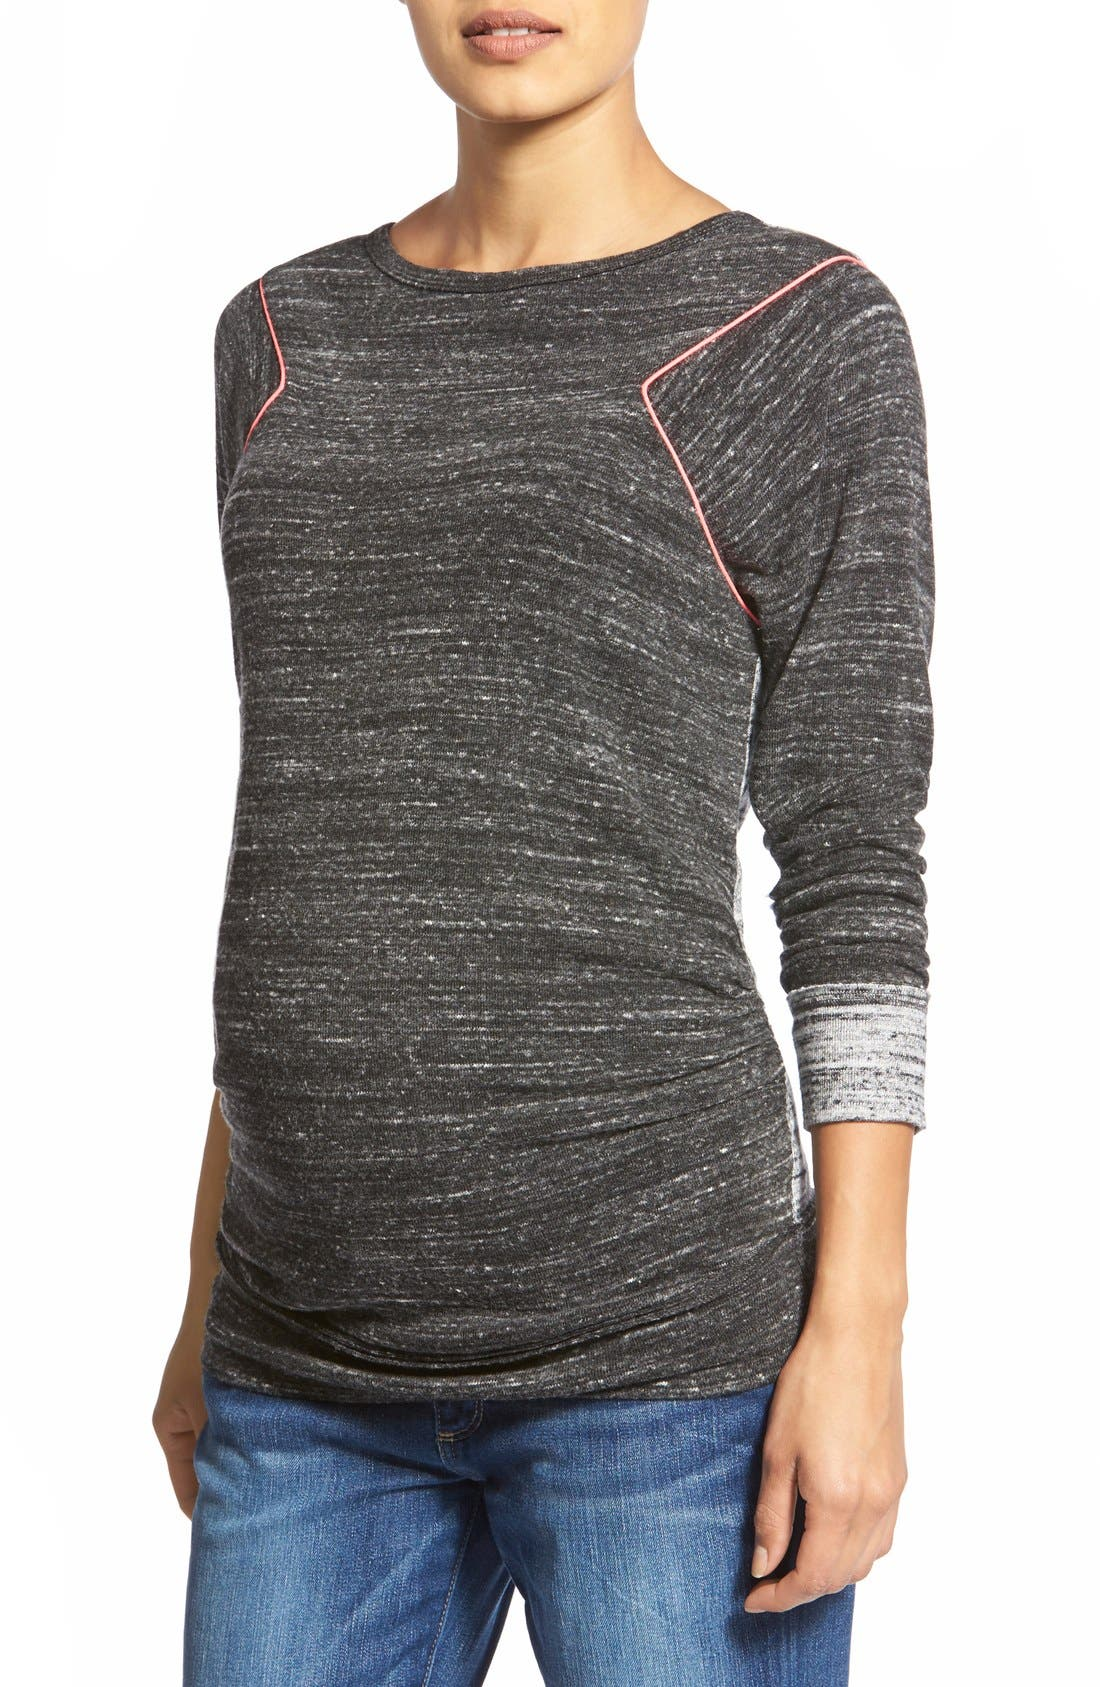 'Raelani' Stretch Jersey Maternity Top,                             Main thumbnail 1, color,                             Heather/ Charcoal